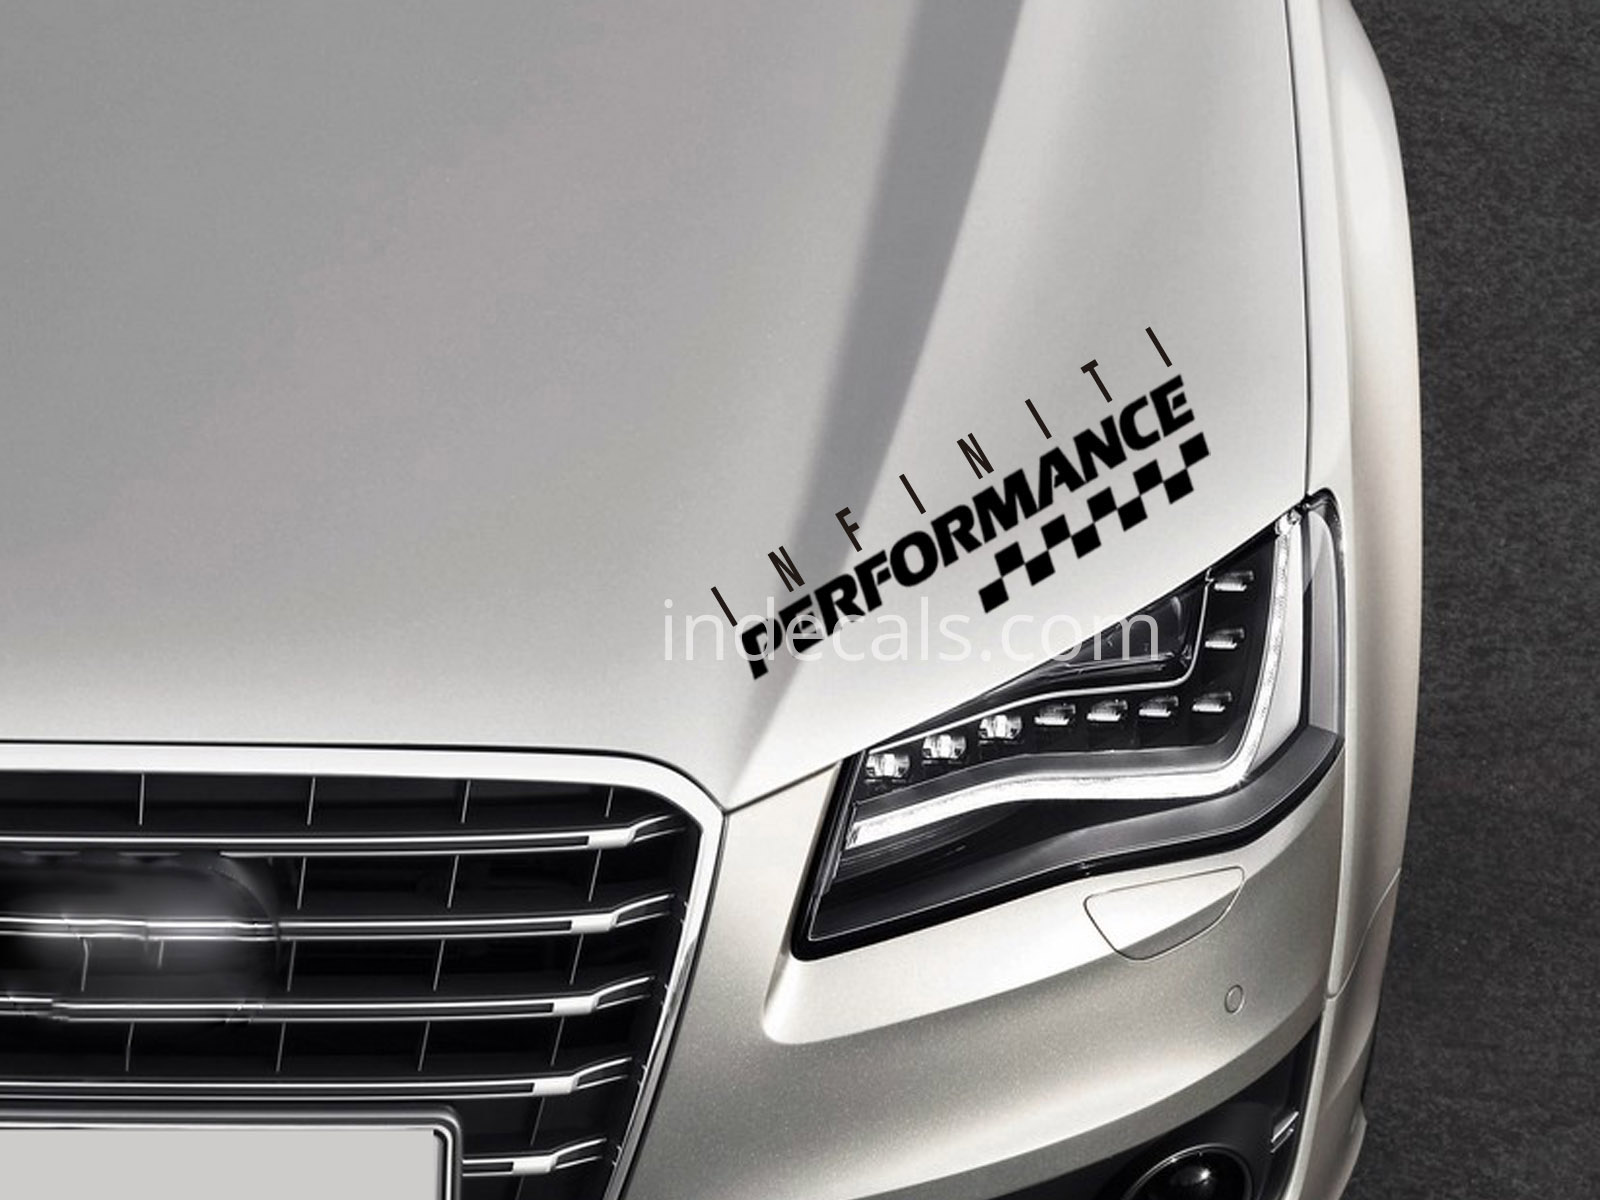 1 x Infiniti Performance Sticker - Black